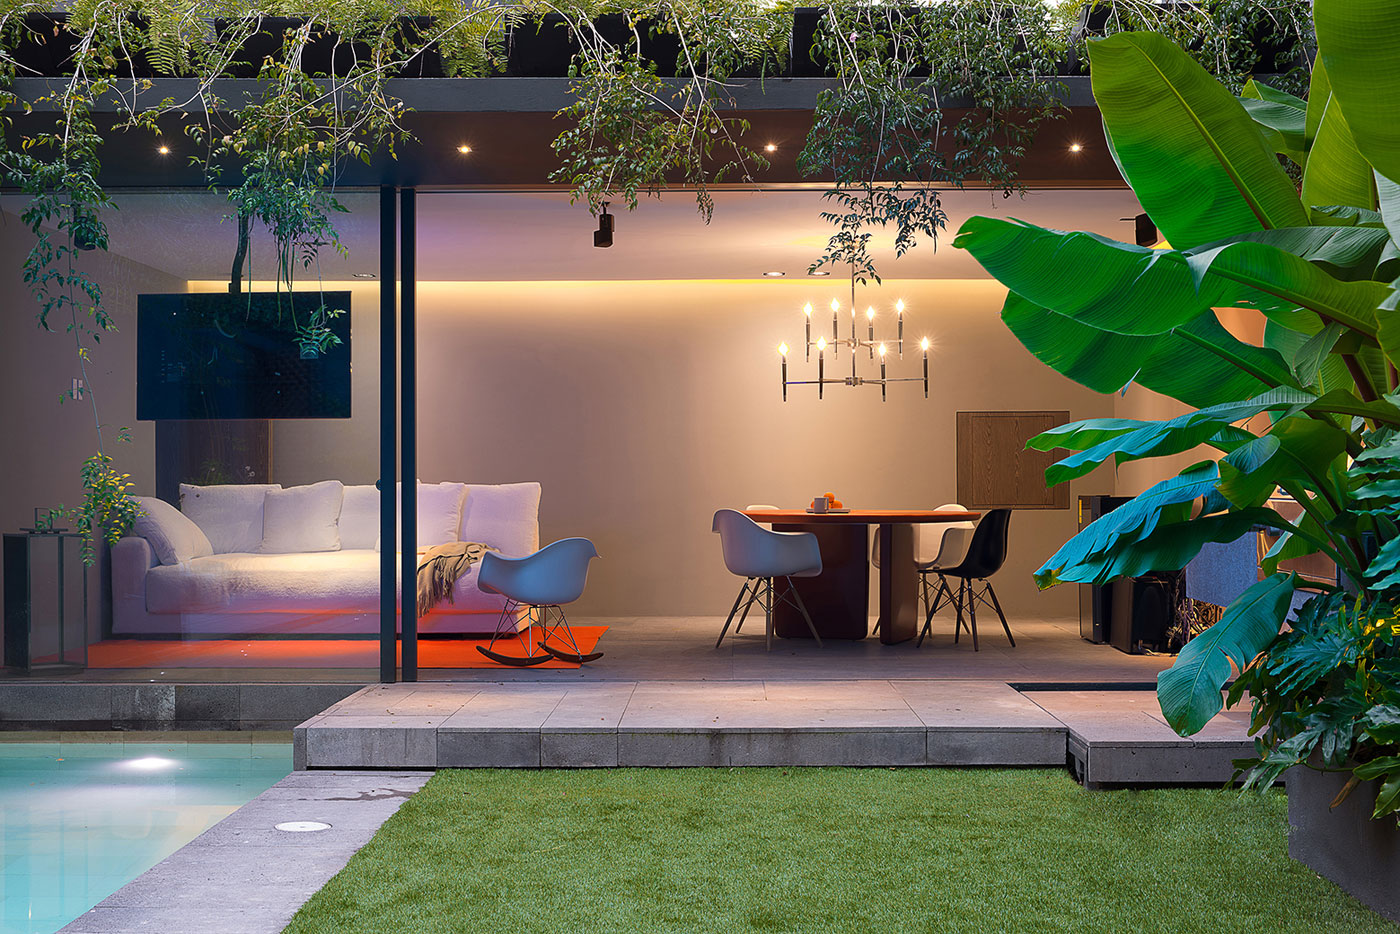 Modern Barrancas House in Mexico City by EZEQUIELFARCA architecture and design-19